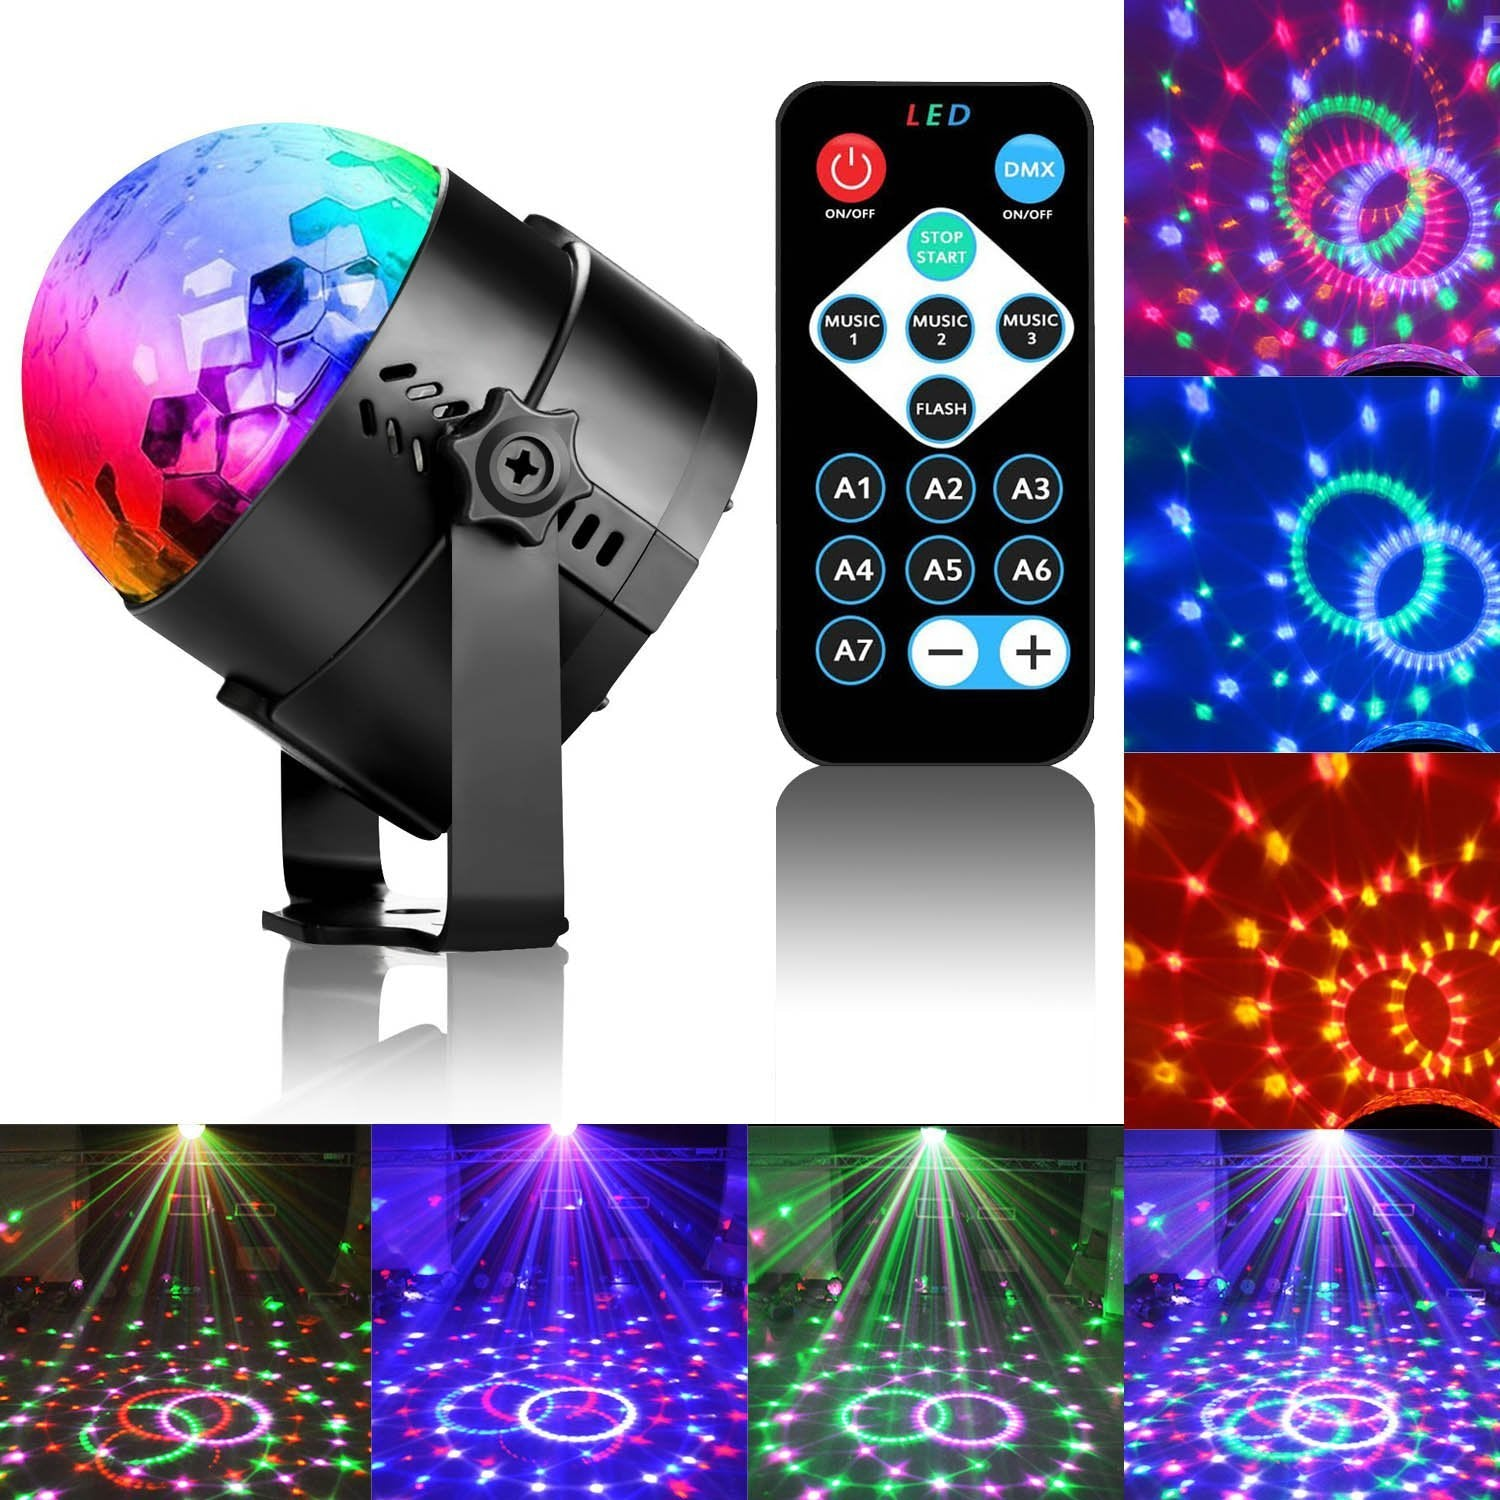 Led Party Sound Strobe Activated Lamp Disco 7 With Lights Ball Modes LightingRbg Stage Remote For Control Dj Par Light FKTcl1J